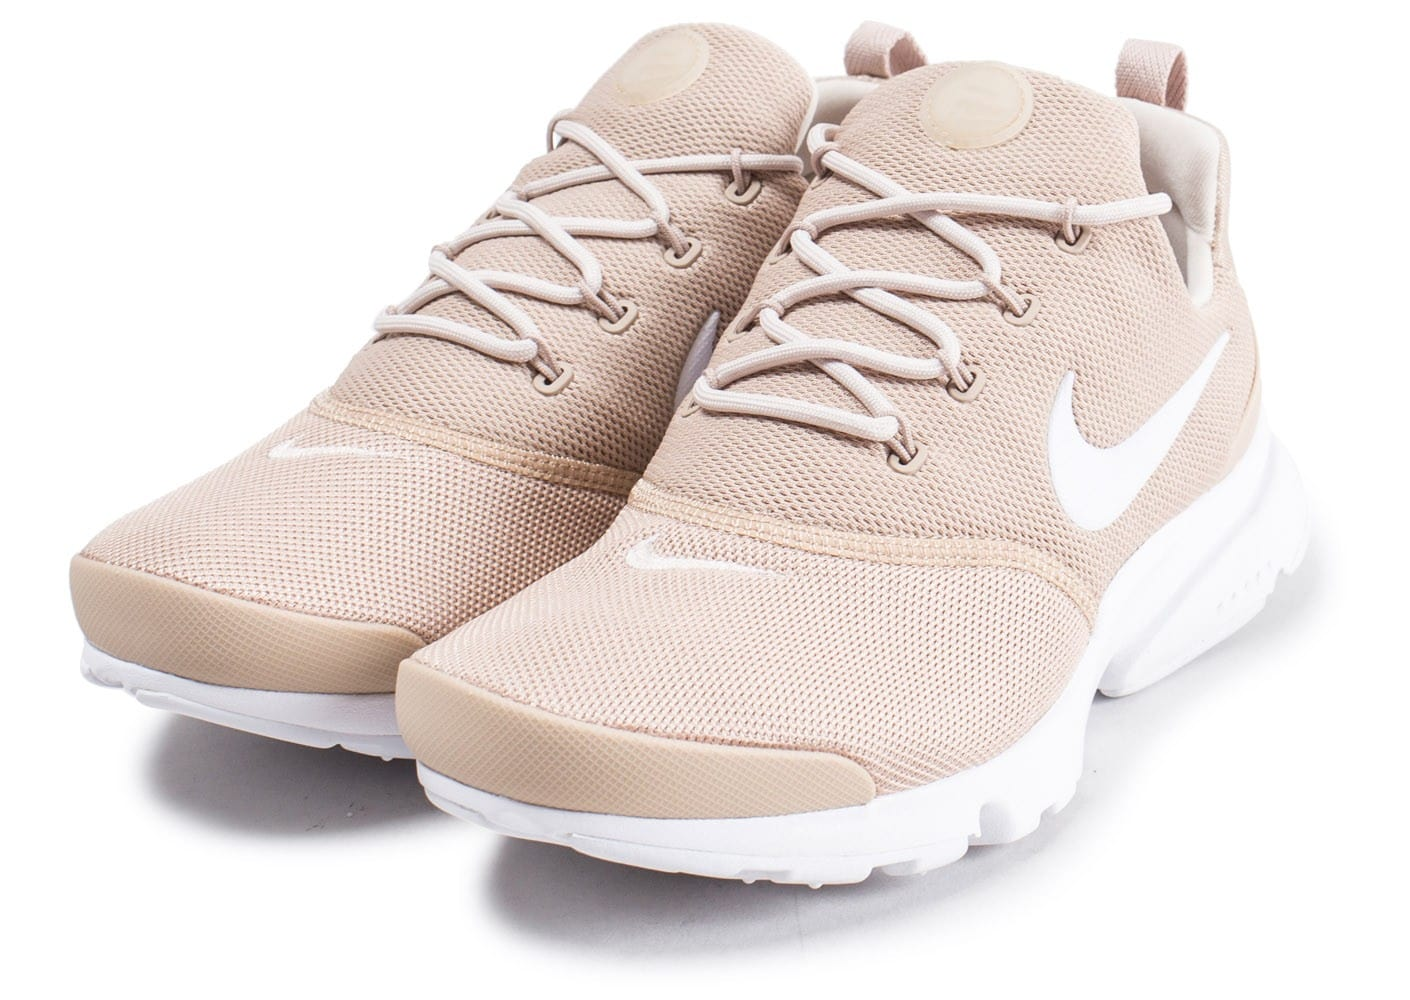 nike presto fly beige chaussures femme chausport. Black Bedroom Furniture Sets. Home Design Ideas